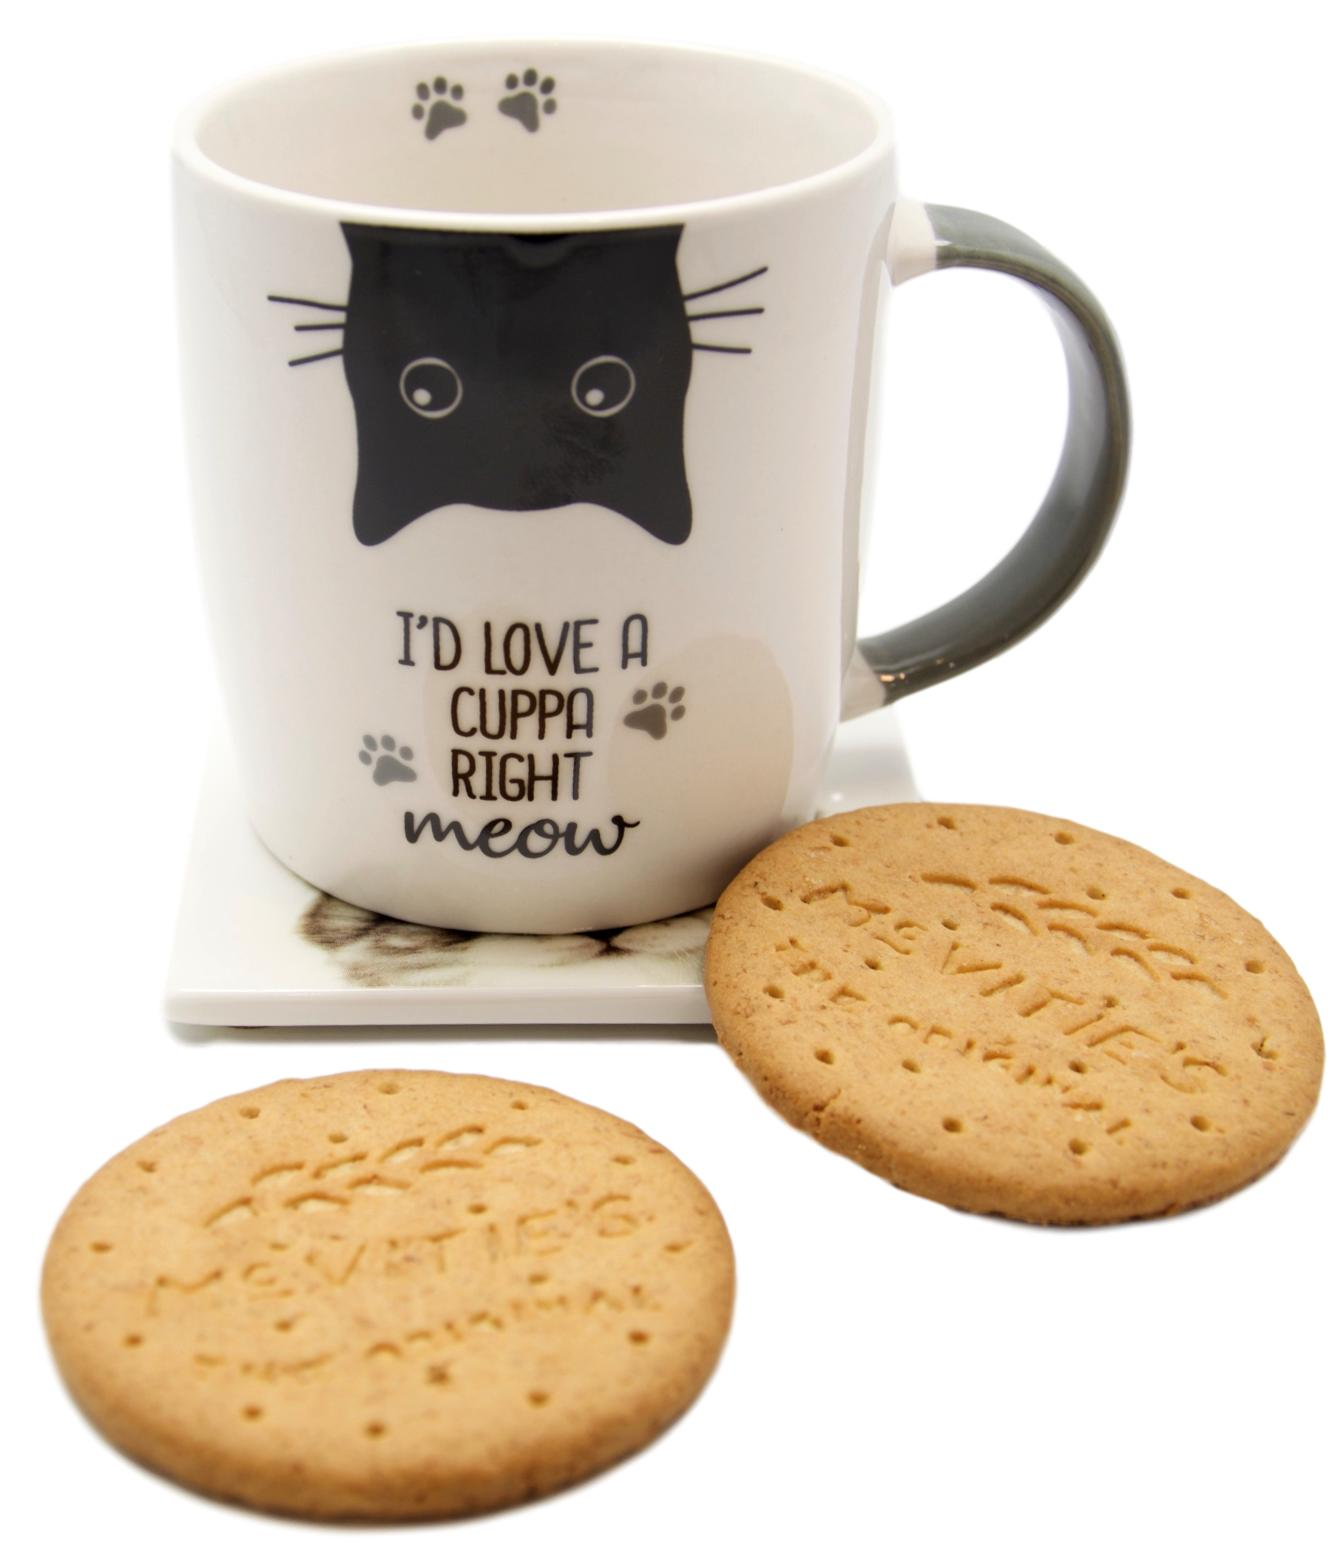 I'd Love a Cuppa Right Meow Mug